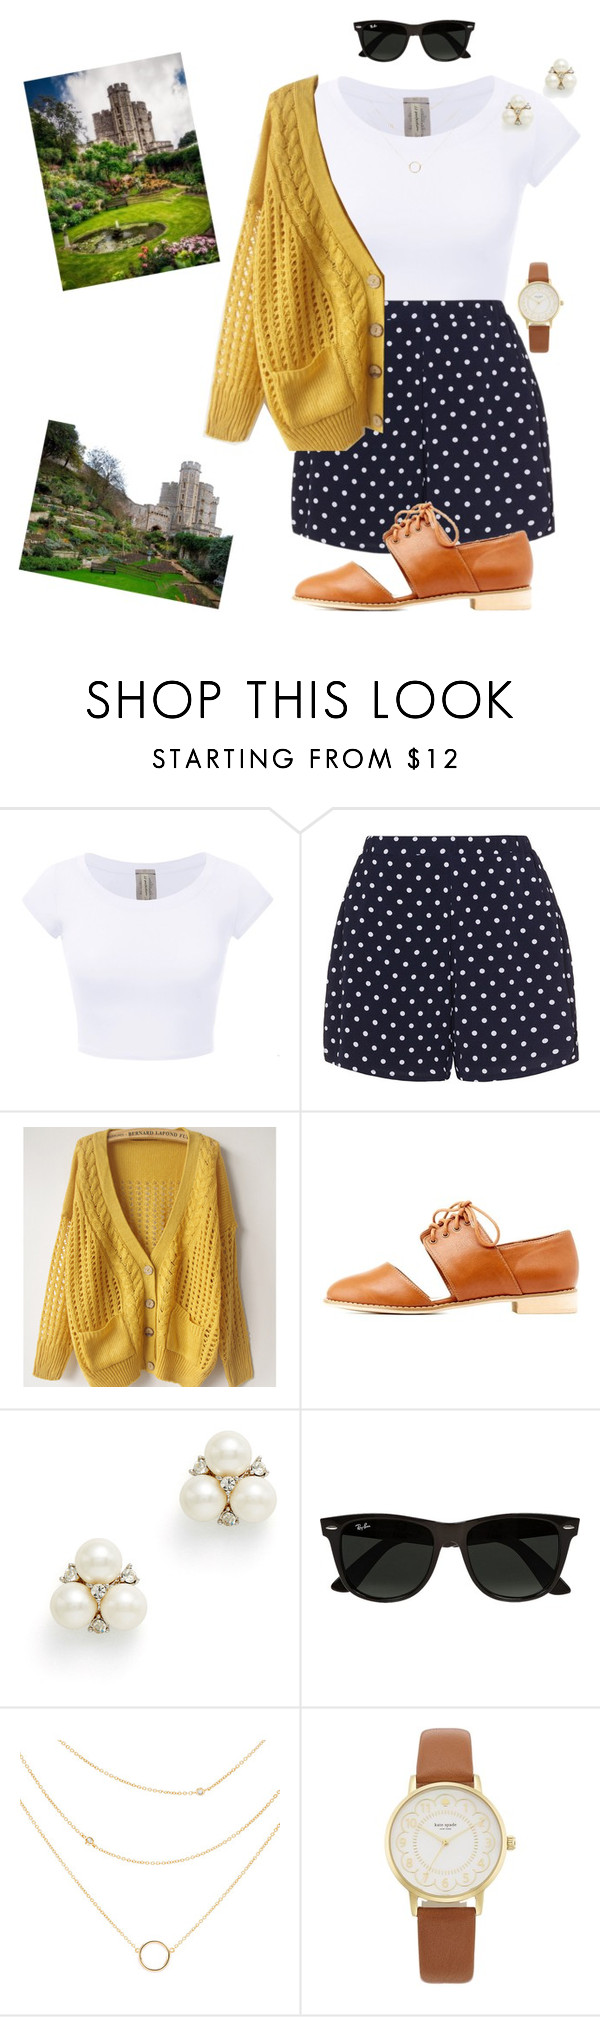 """Cardigan Day"" by mirellasandoval12 ❤ liked on Polyvore featuring Zizzi, Charlotte Russe, Ben-Amun, Ray-Ban and Kate Spade"